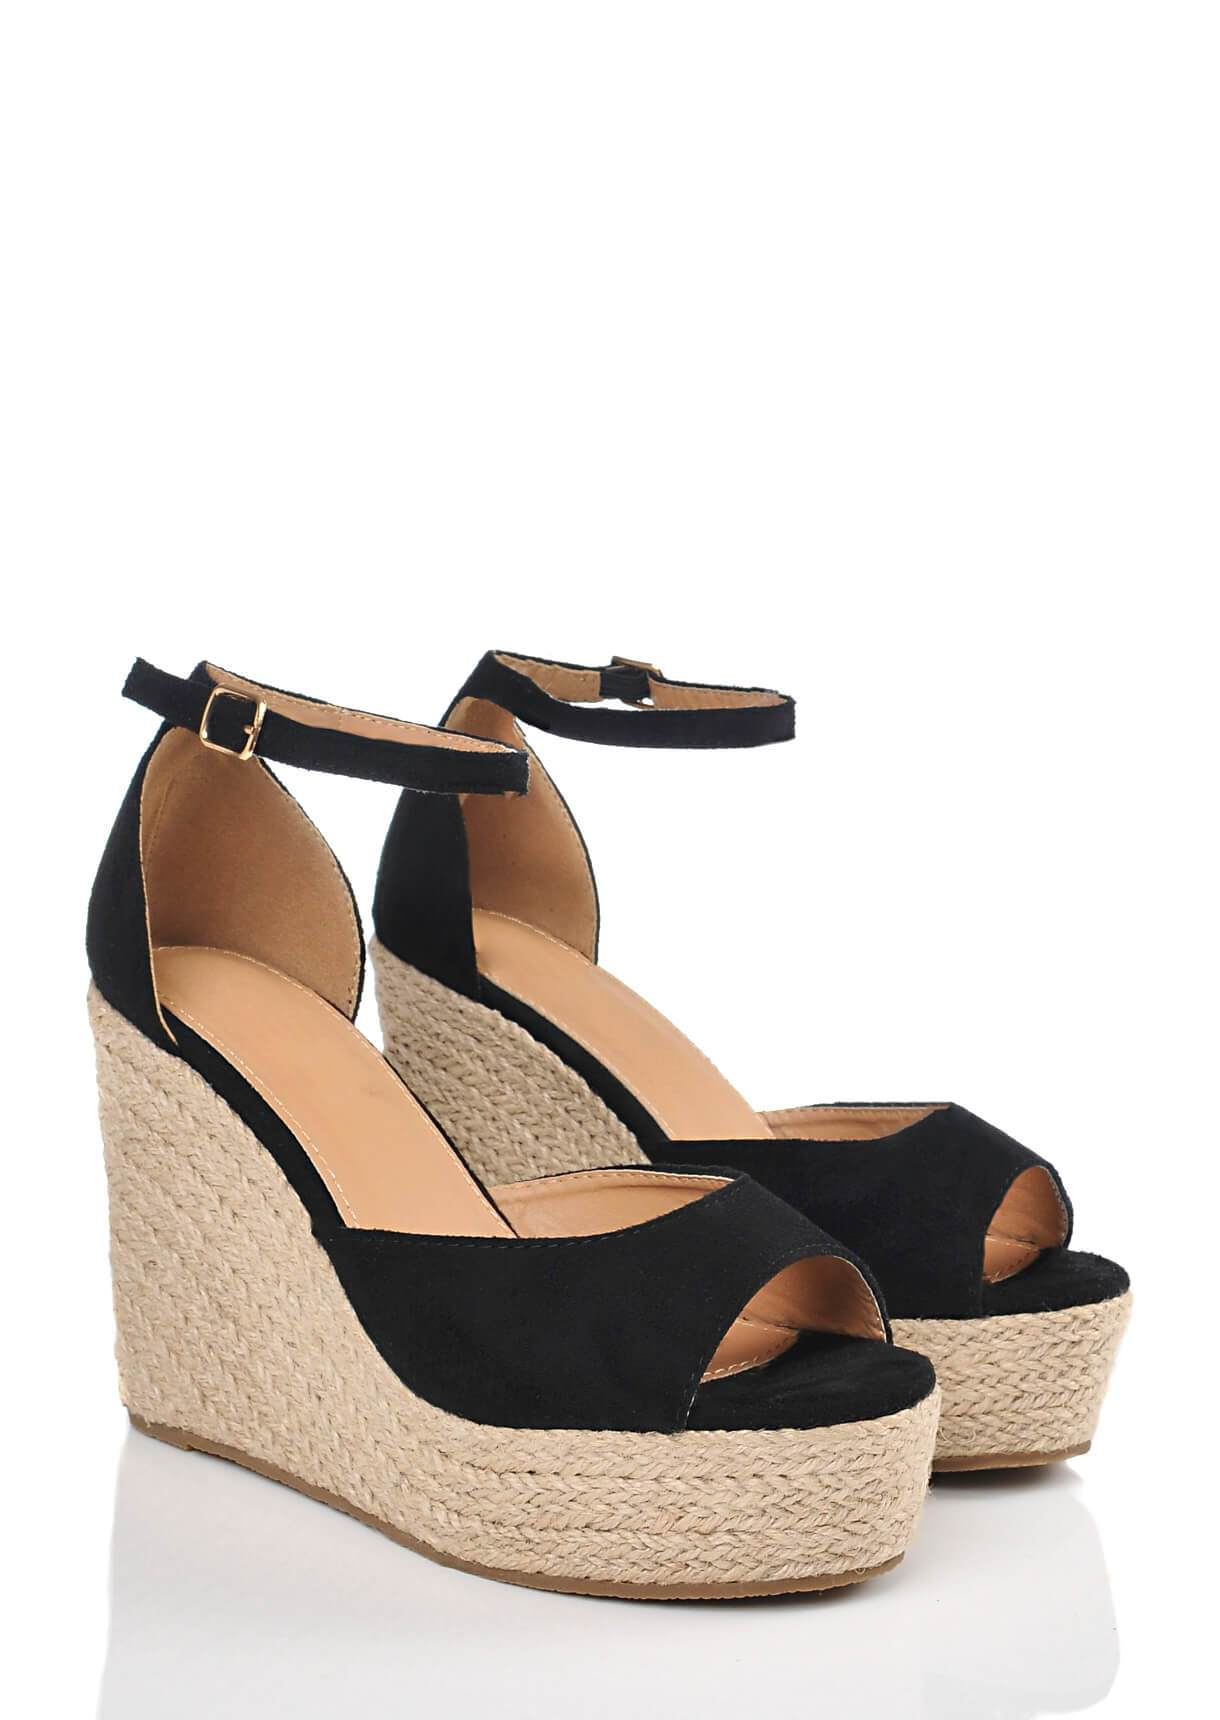 Wide Fit Black Suede Open Toe Wedge Sandals